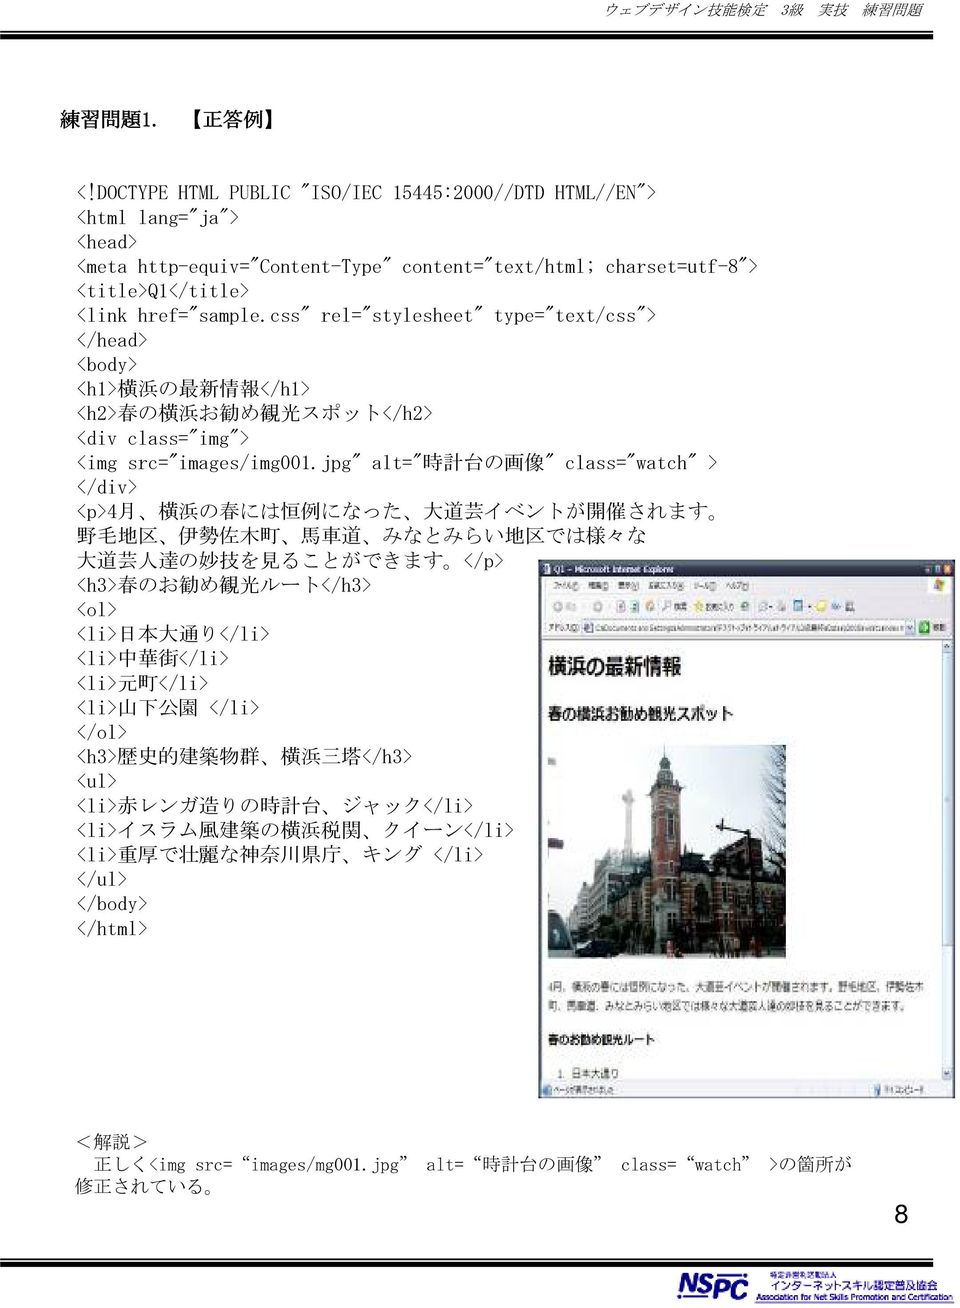 "css"" rel=""stylesheet"" type=""text/css""> </head> <body> <h1> 横 浜 の 最 新 情 報 </h1> <h2> 春 の 横 浜 お 勧 め 観 光 スポット</h2> <div class=""img""> <img src=""images/img001."